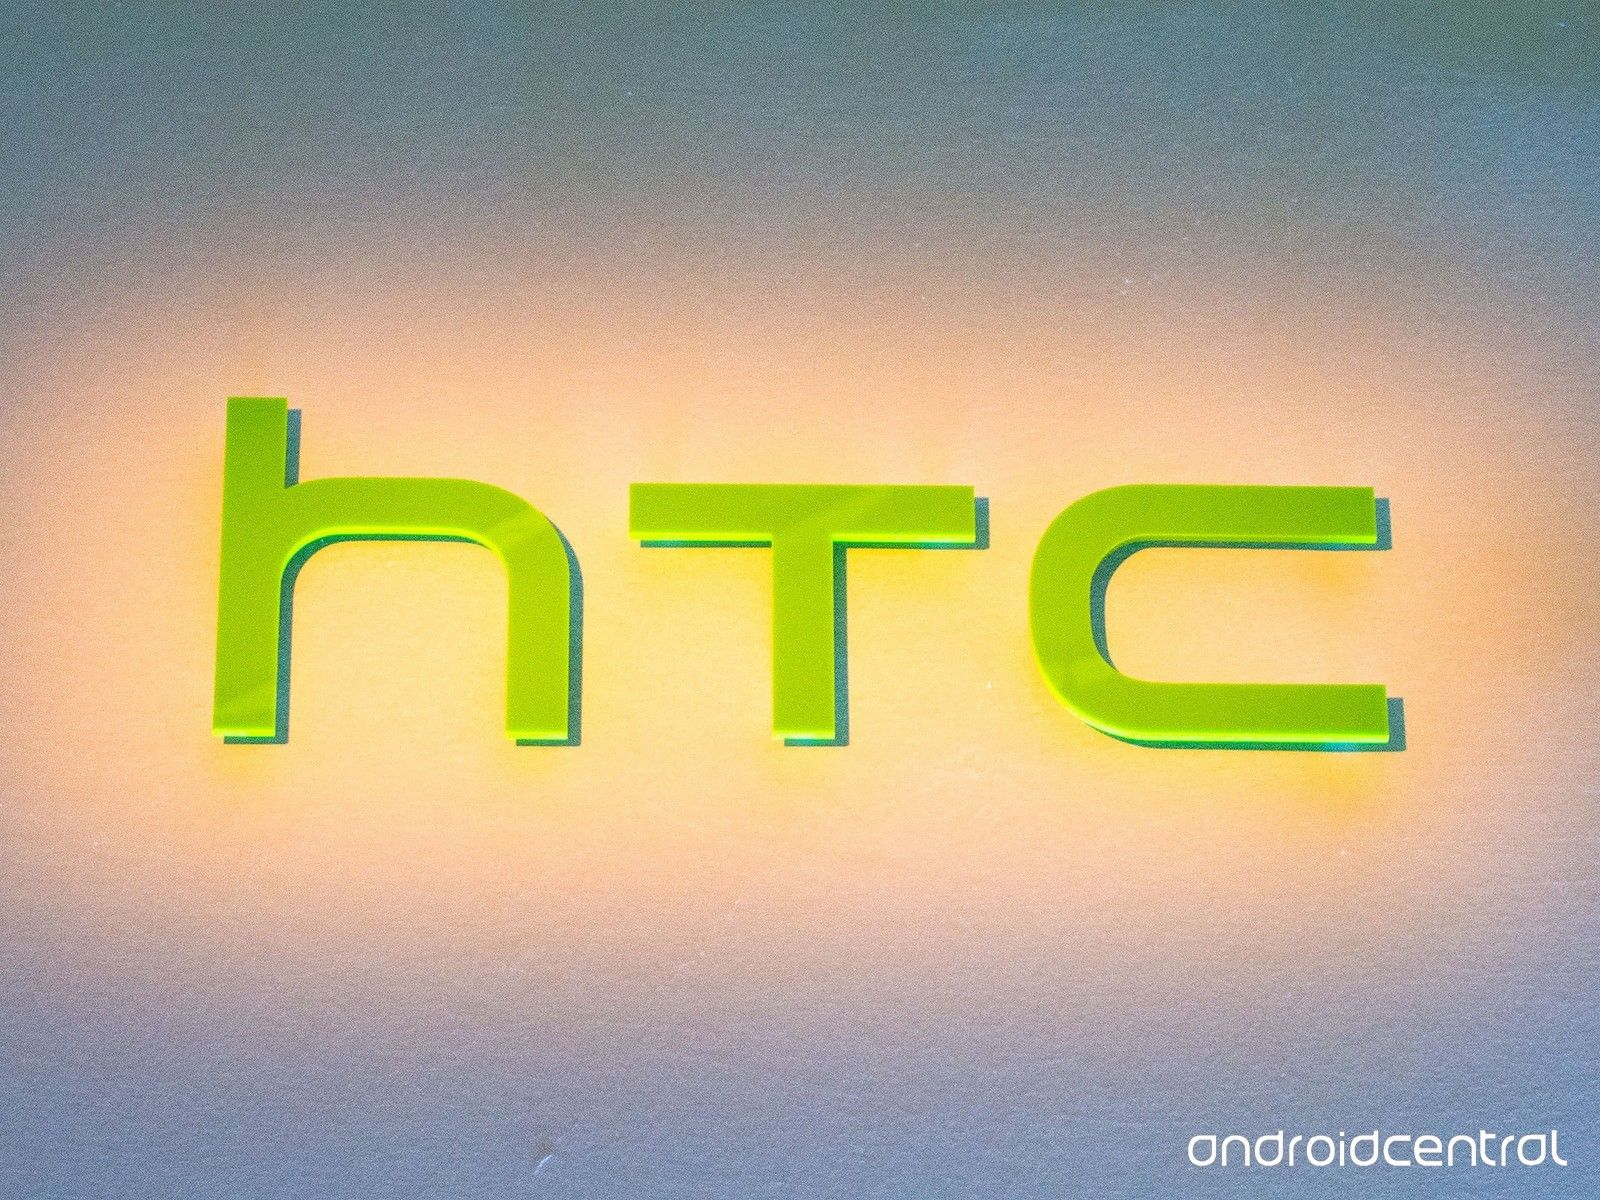 HTC Logo - HTC may release a smartwatch after all, February 2016 launch rumored ...